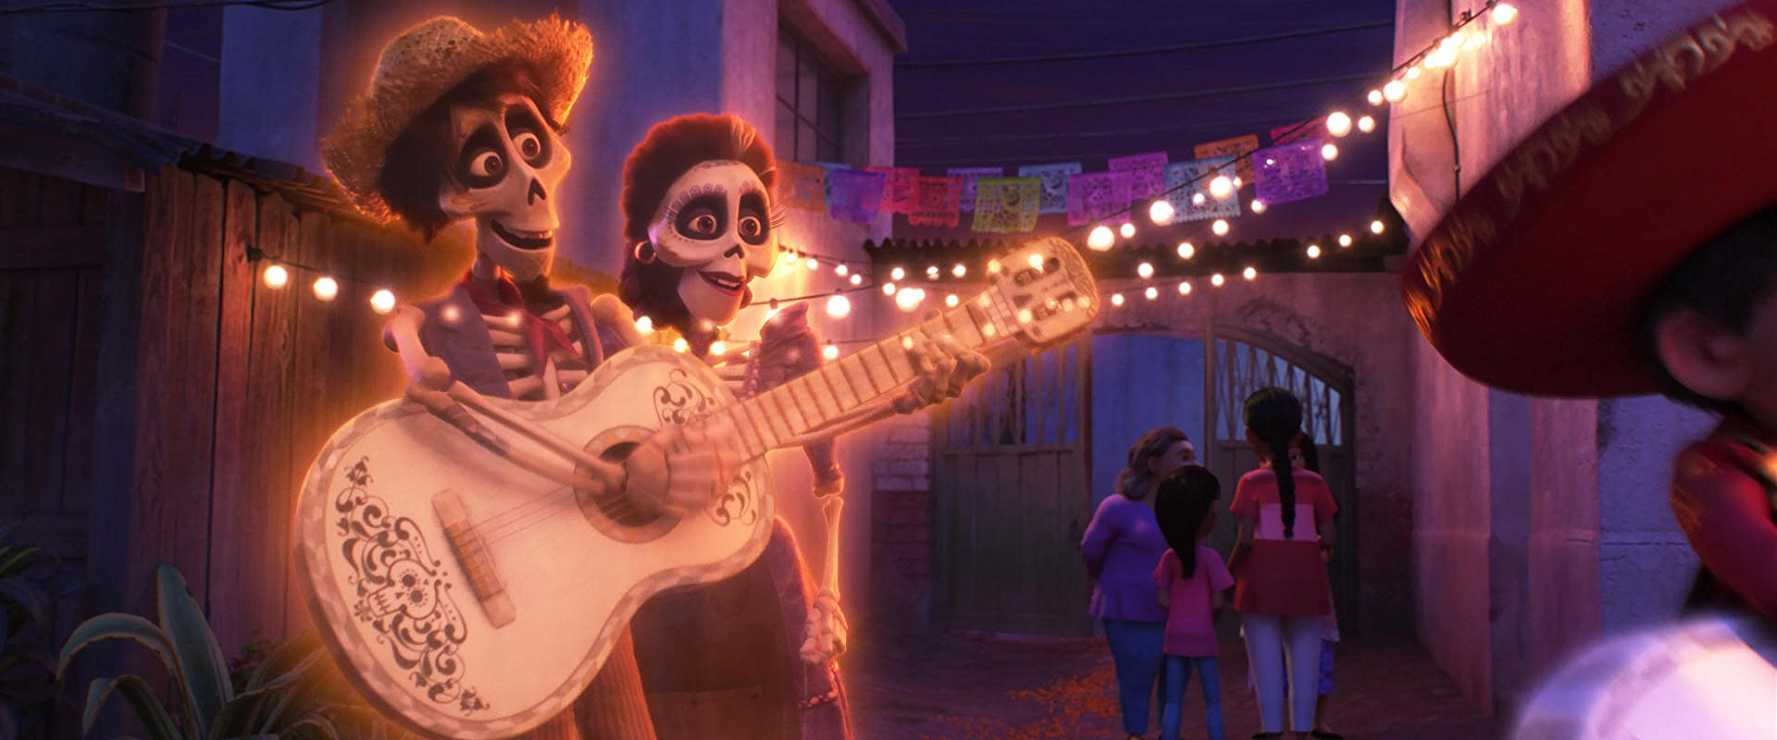 coco movie free download in hindi 300mb